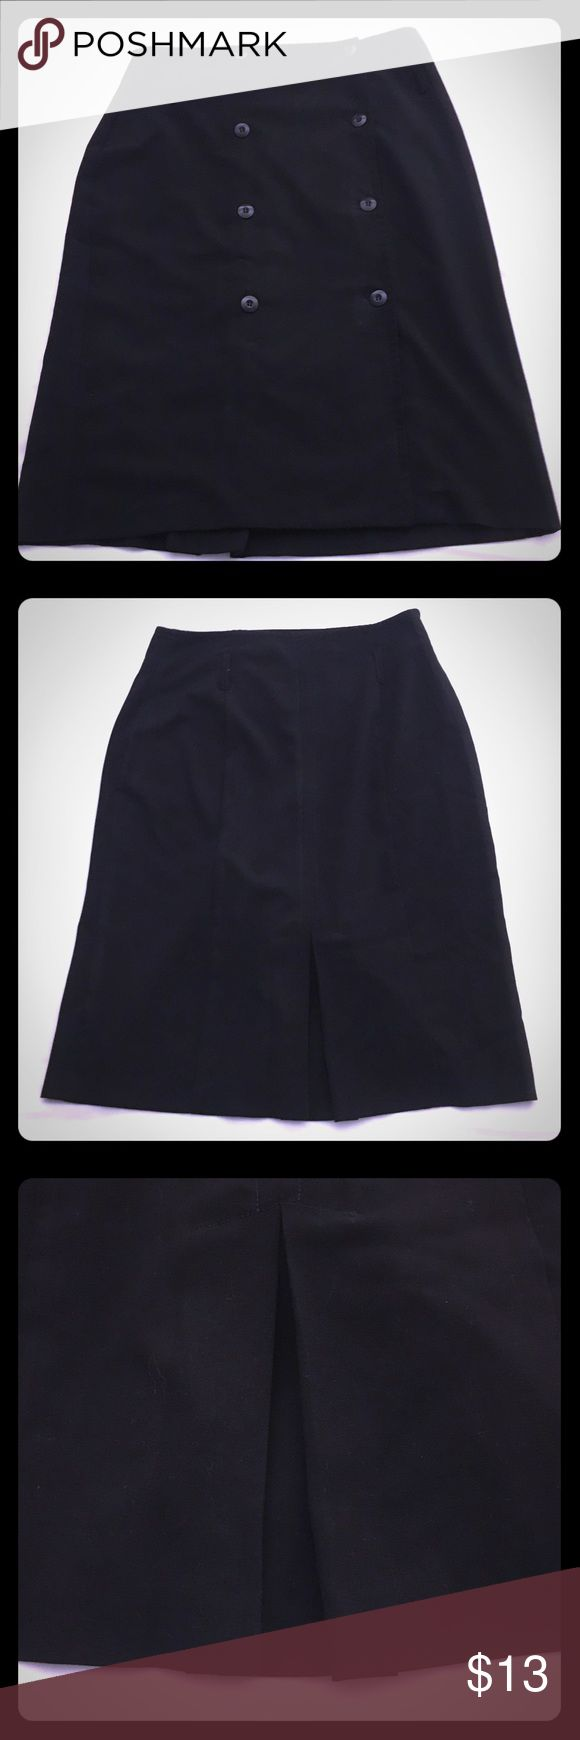 Black Mid-Calf Buttons Skirt 🎁Comes w/ FREE gift! Size 12 Black mid-calf skirt with two rows of 4 buttons (8 buttons total) running down the front of the skirt. Covered slit in the middle of the back of the skirt for easy walking. This skirt has the option to wear a cute belt with it with belt loops. Great for the office, a meeting, dinner date, great skirt to wear to special events! 🎁🎁🎁Comes with free gifts!!! And fast shipping!!!📦📦📦 Bundle to save!! Make me an offer! AB Studio…